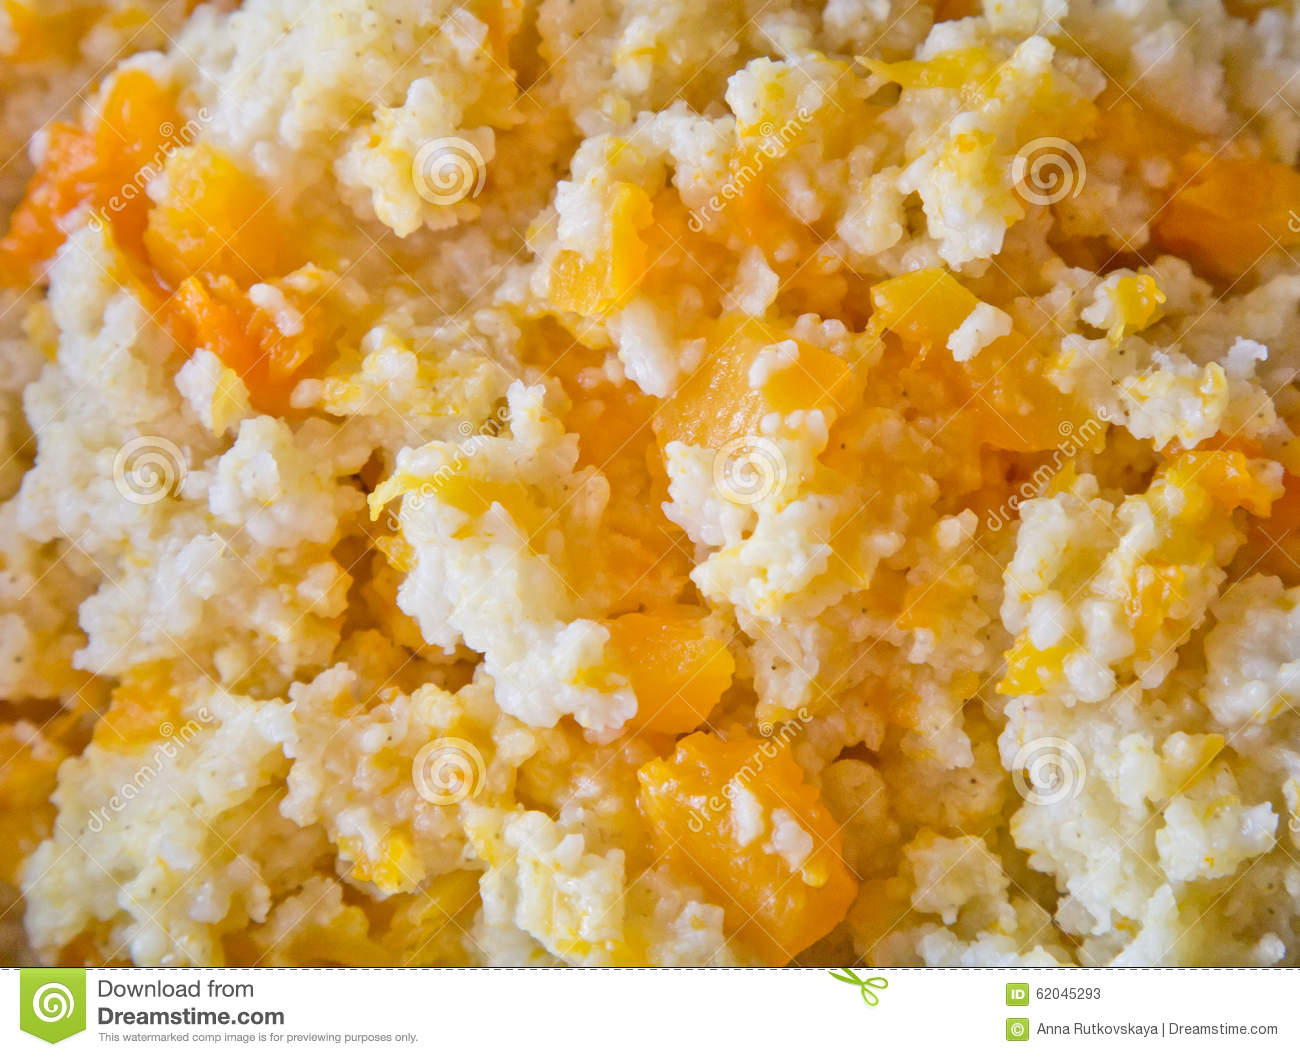 Millet Porridge Stock Photo - Image: 62045293